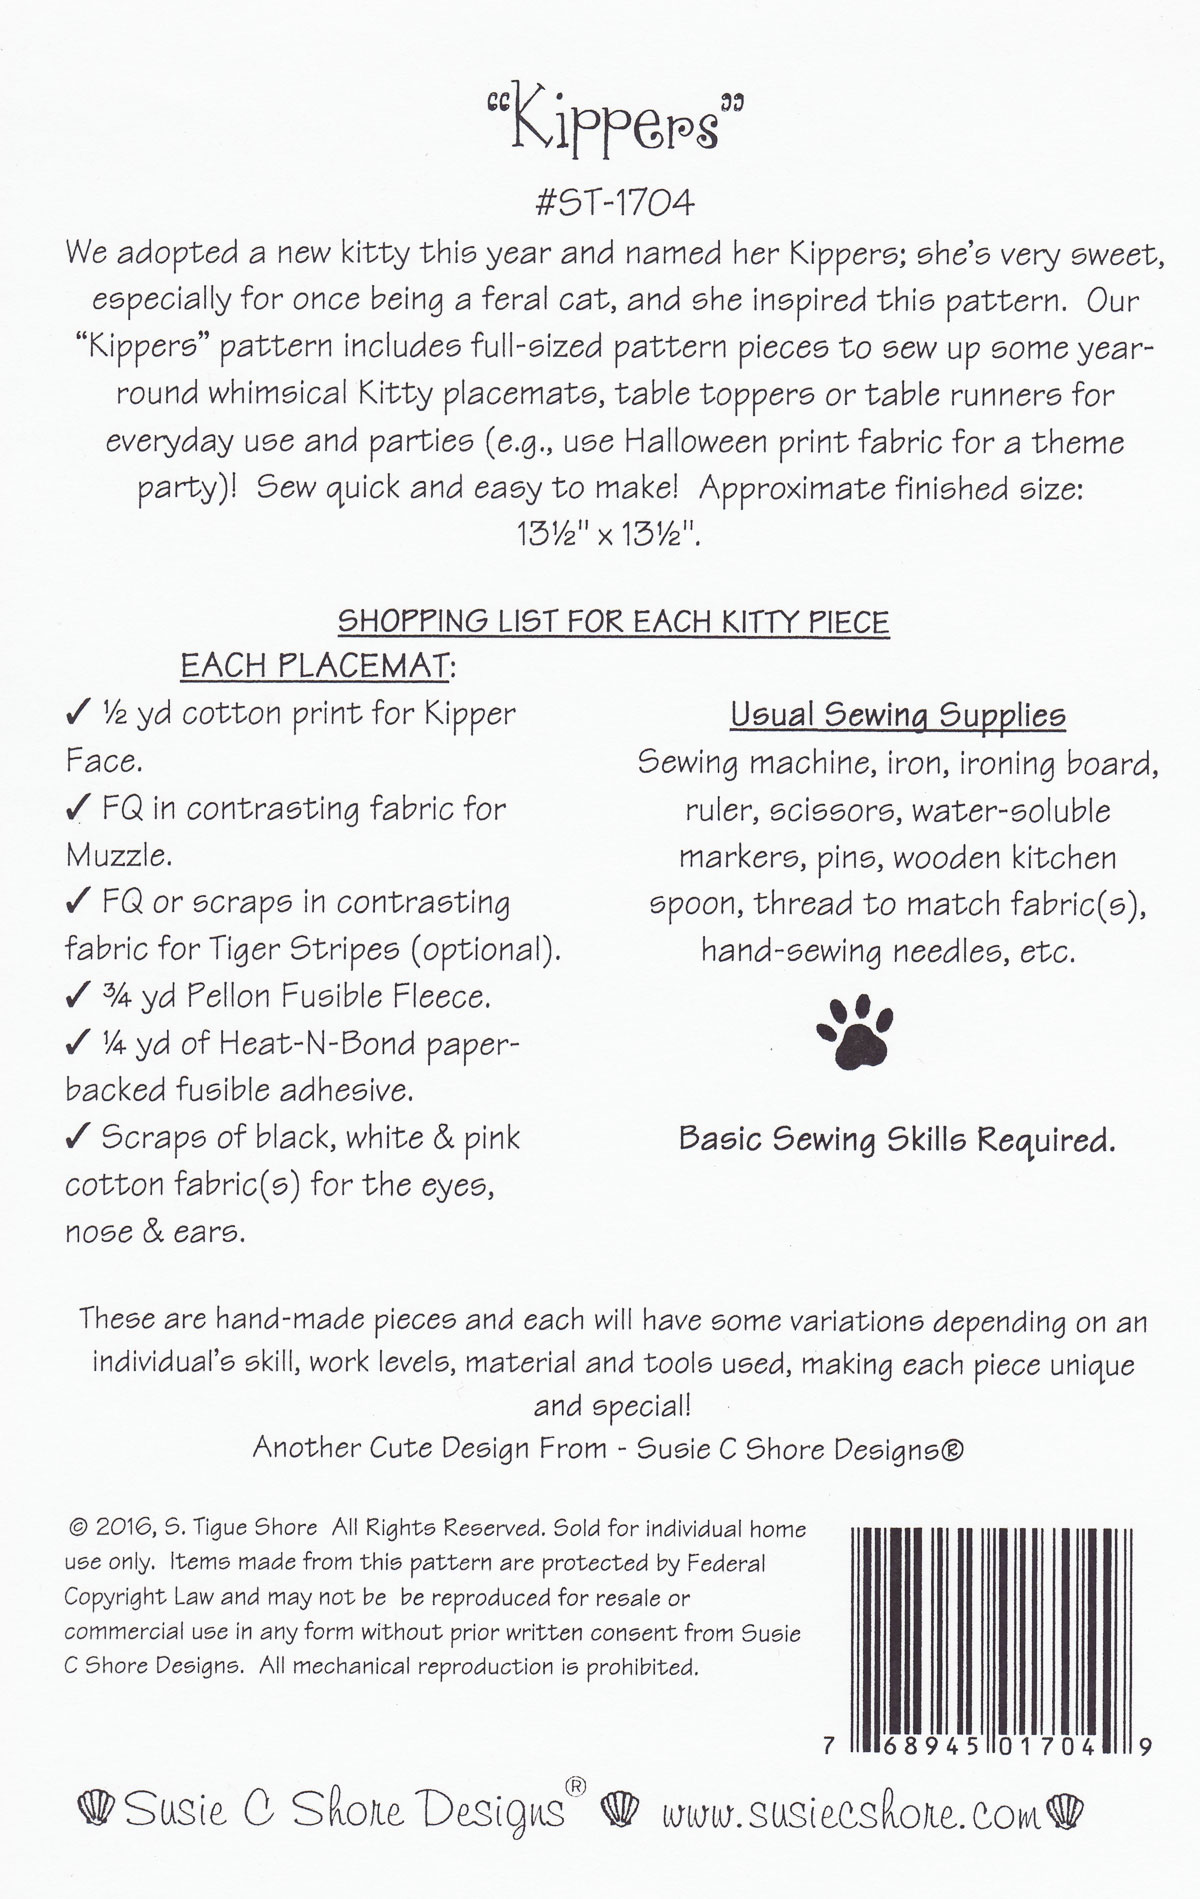 Kippers-sewing-pattern-Susie-C-Shore-back